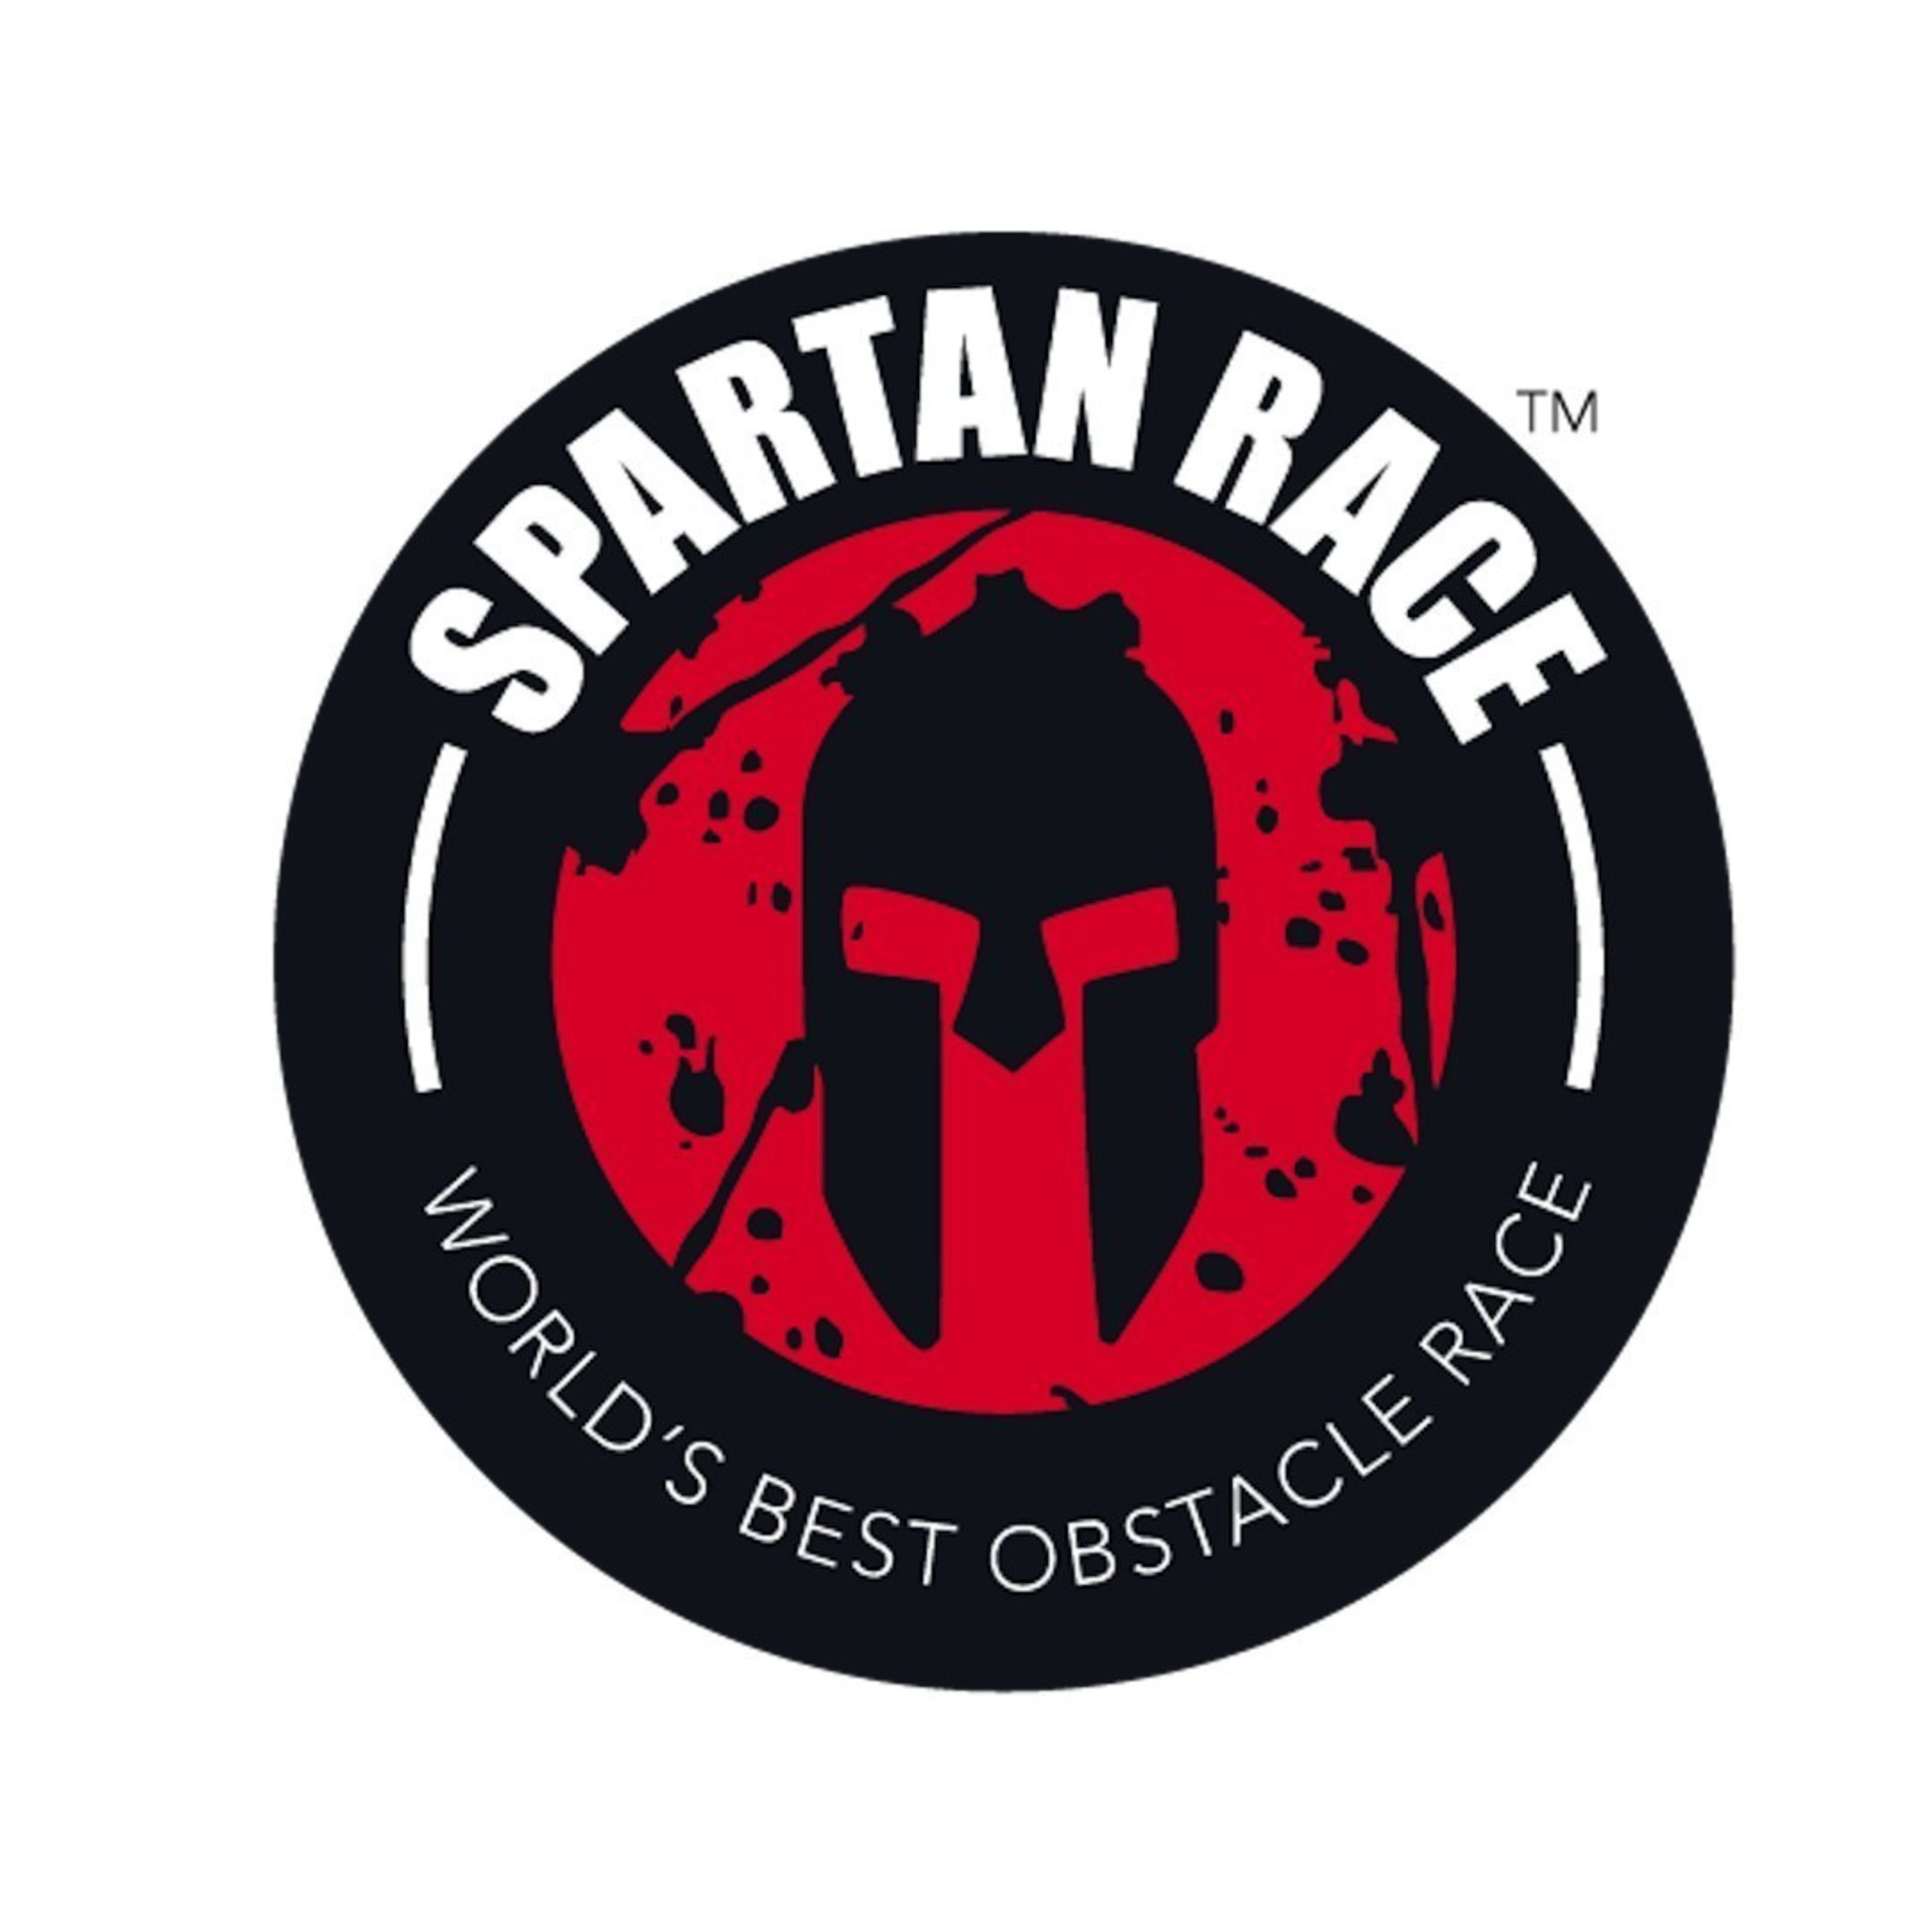 Spartan Race - Canberra City Sprint Logo